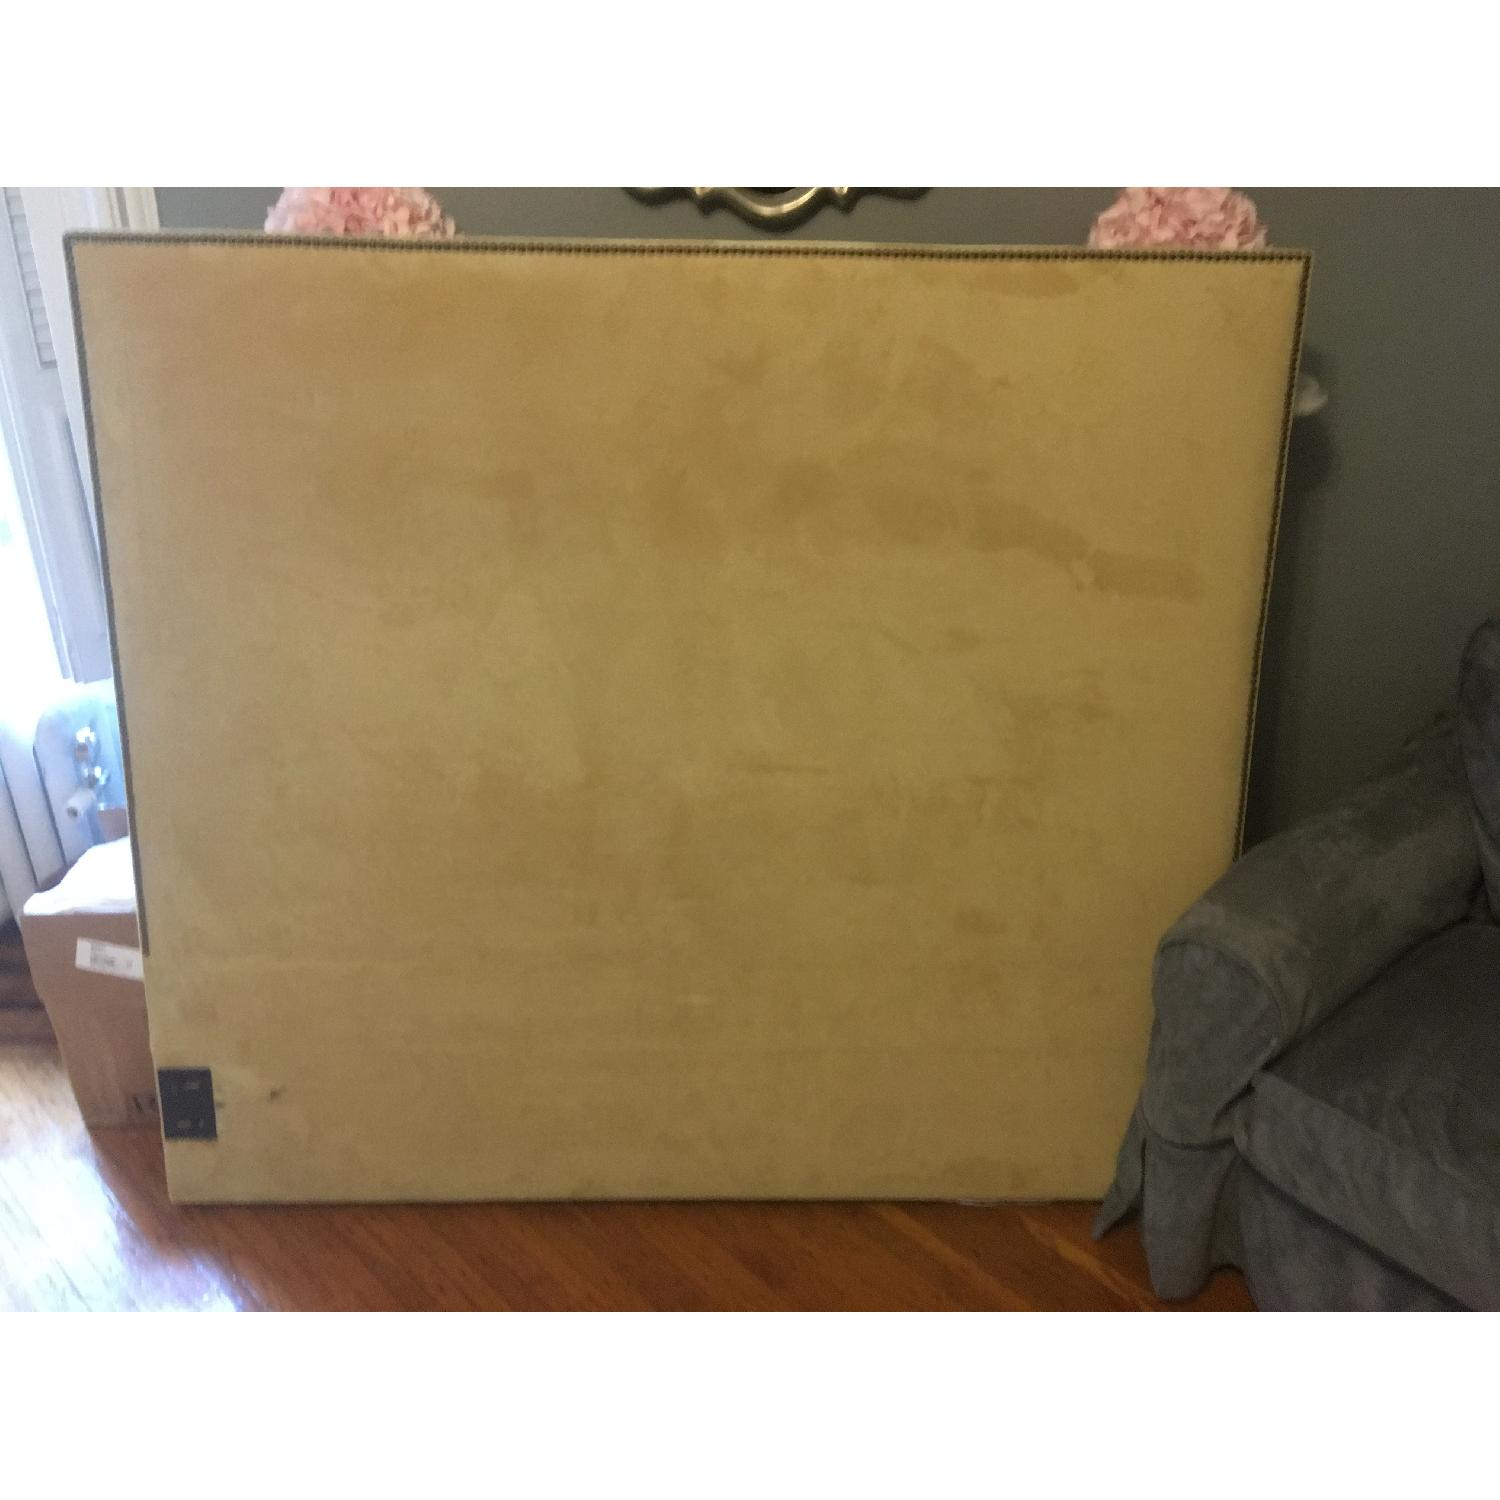 West Elm Queen Size Nailhead Upholstered Headboard - image-1